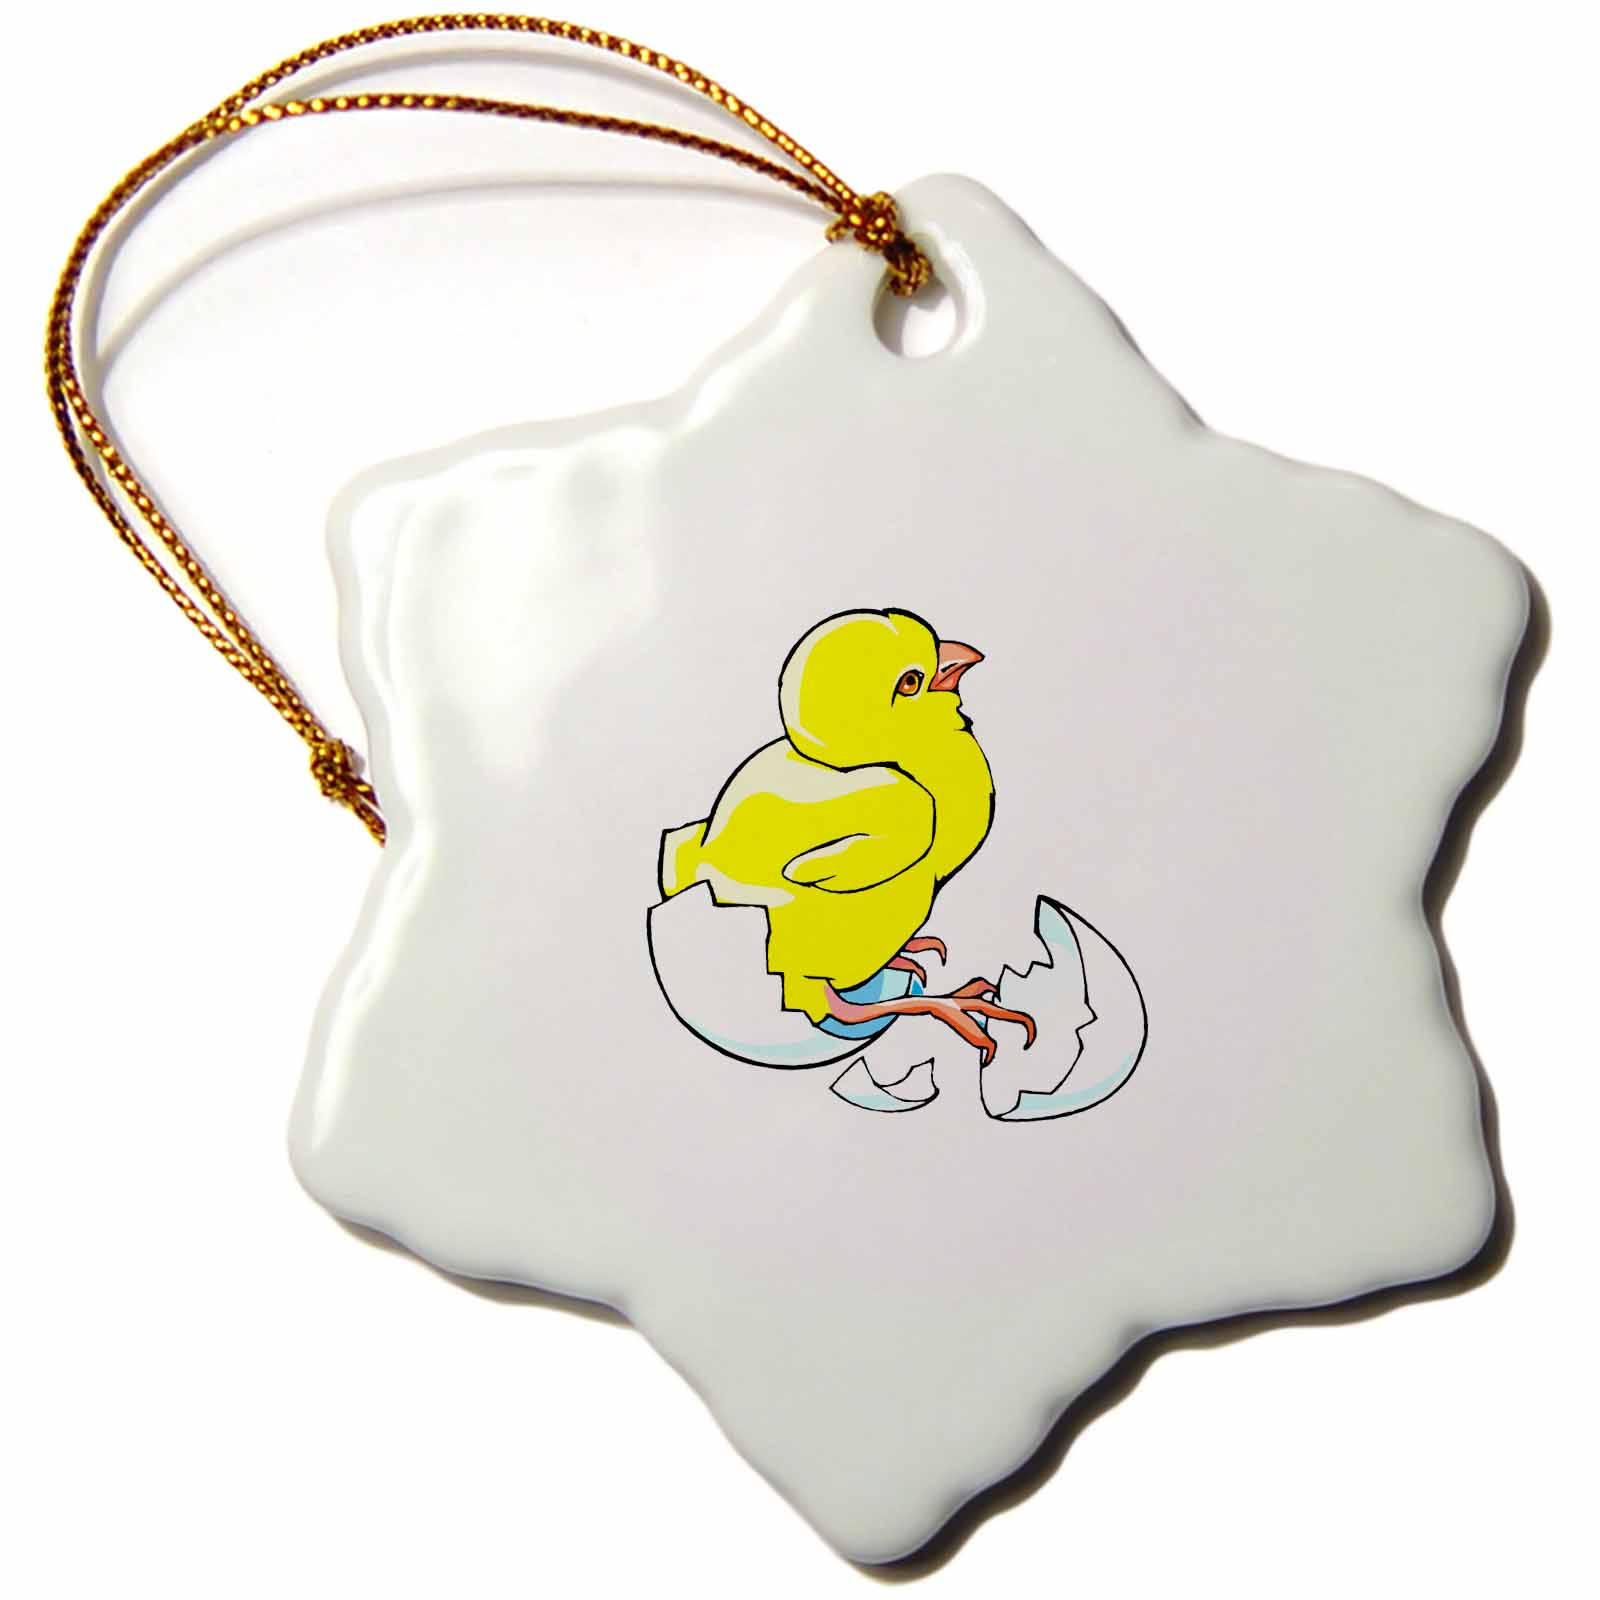 3dRose yellow chicken hatching baby chick , Snowflake Ornament, Porcelain, 3-inch